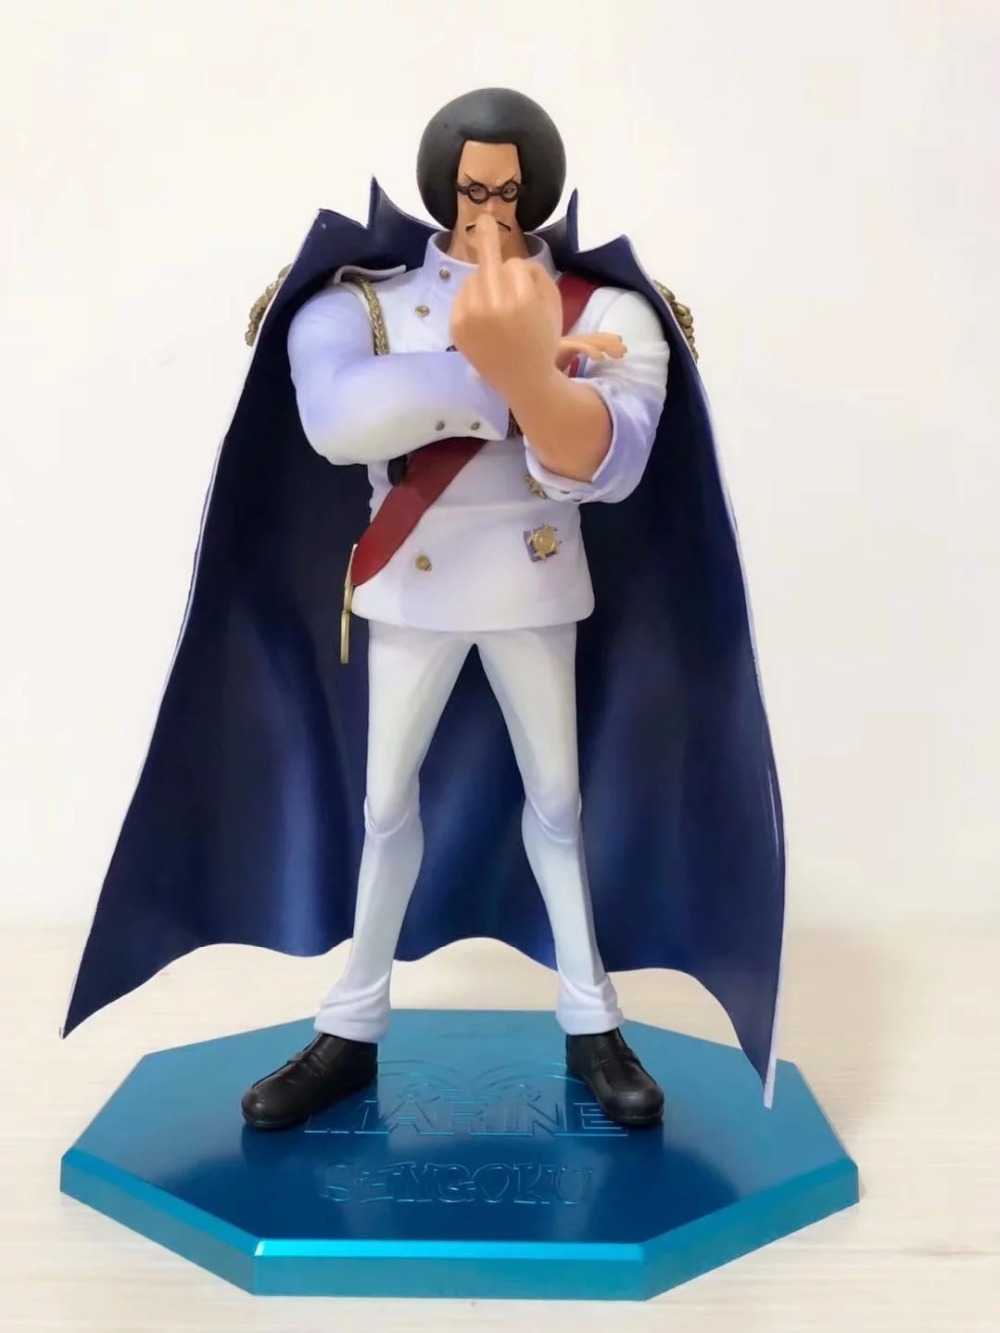 Huong Anime Figures 28CM One Piece Portrait of Pirates P.O.P Limited Edition Sengoku PVC Action Figure Collectible Model ToyHuong Anime Figures 28CM One Piece Portrait of Pirates P.O.P Limited Edition Sengoku PVC Action Figure Collectible Model Toy